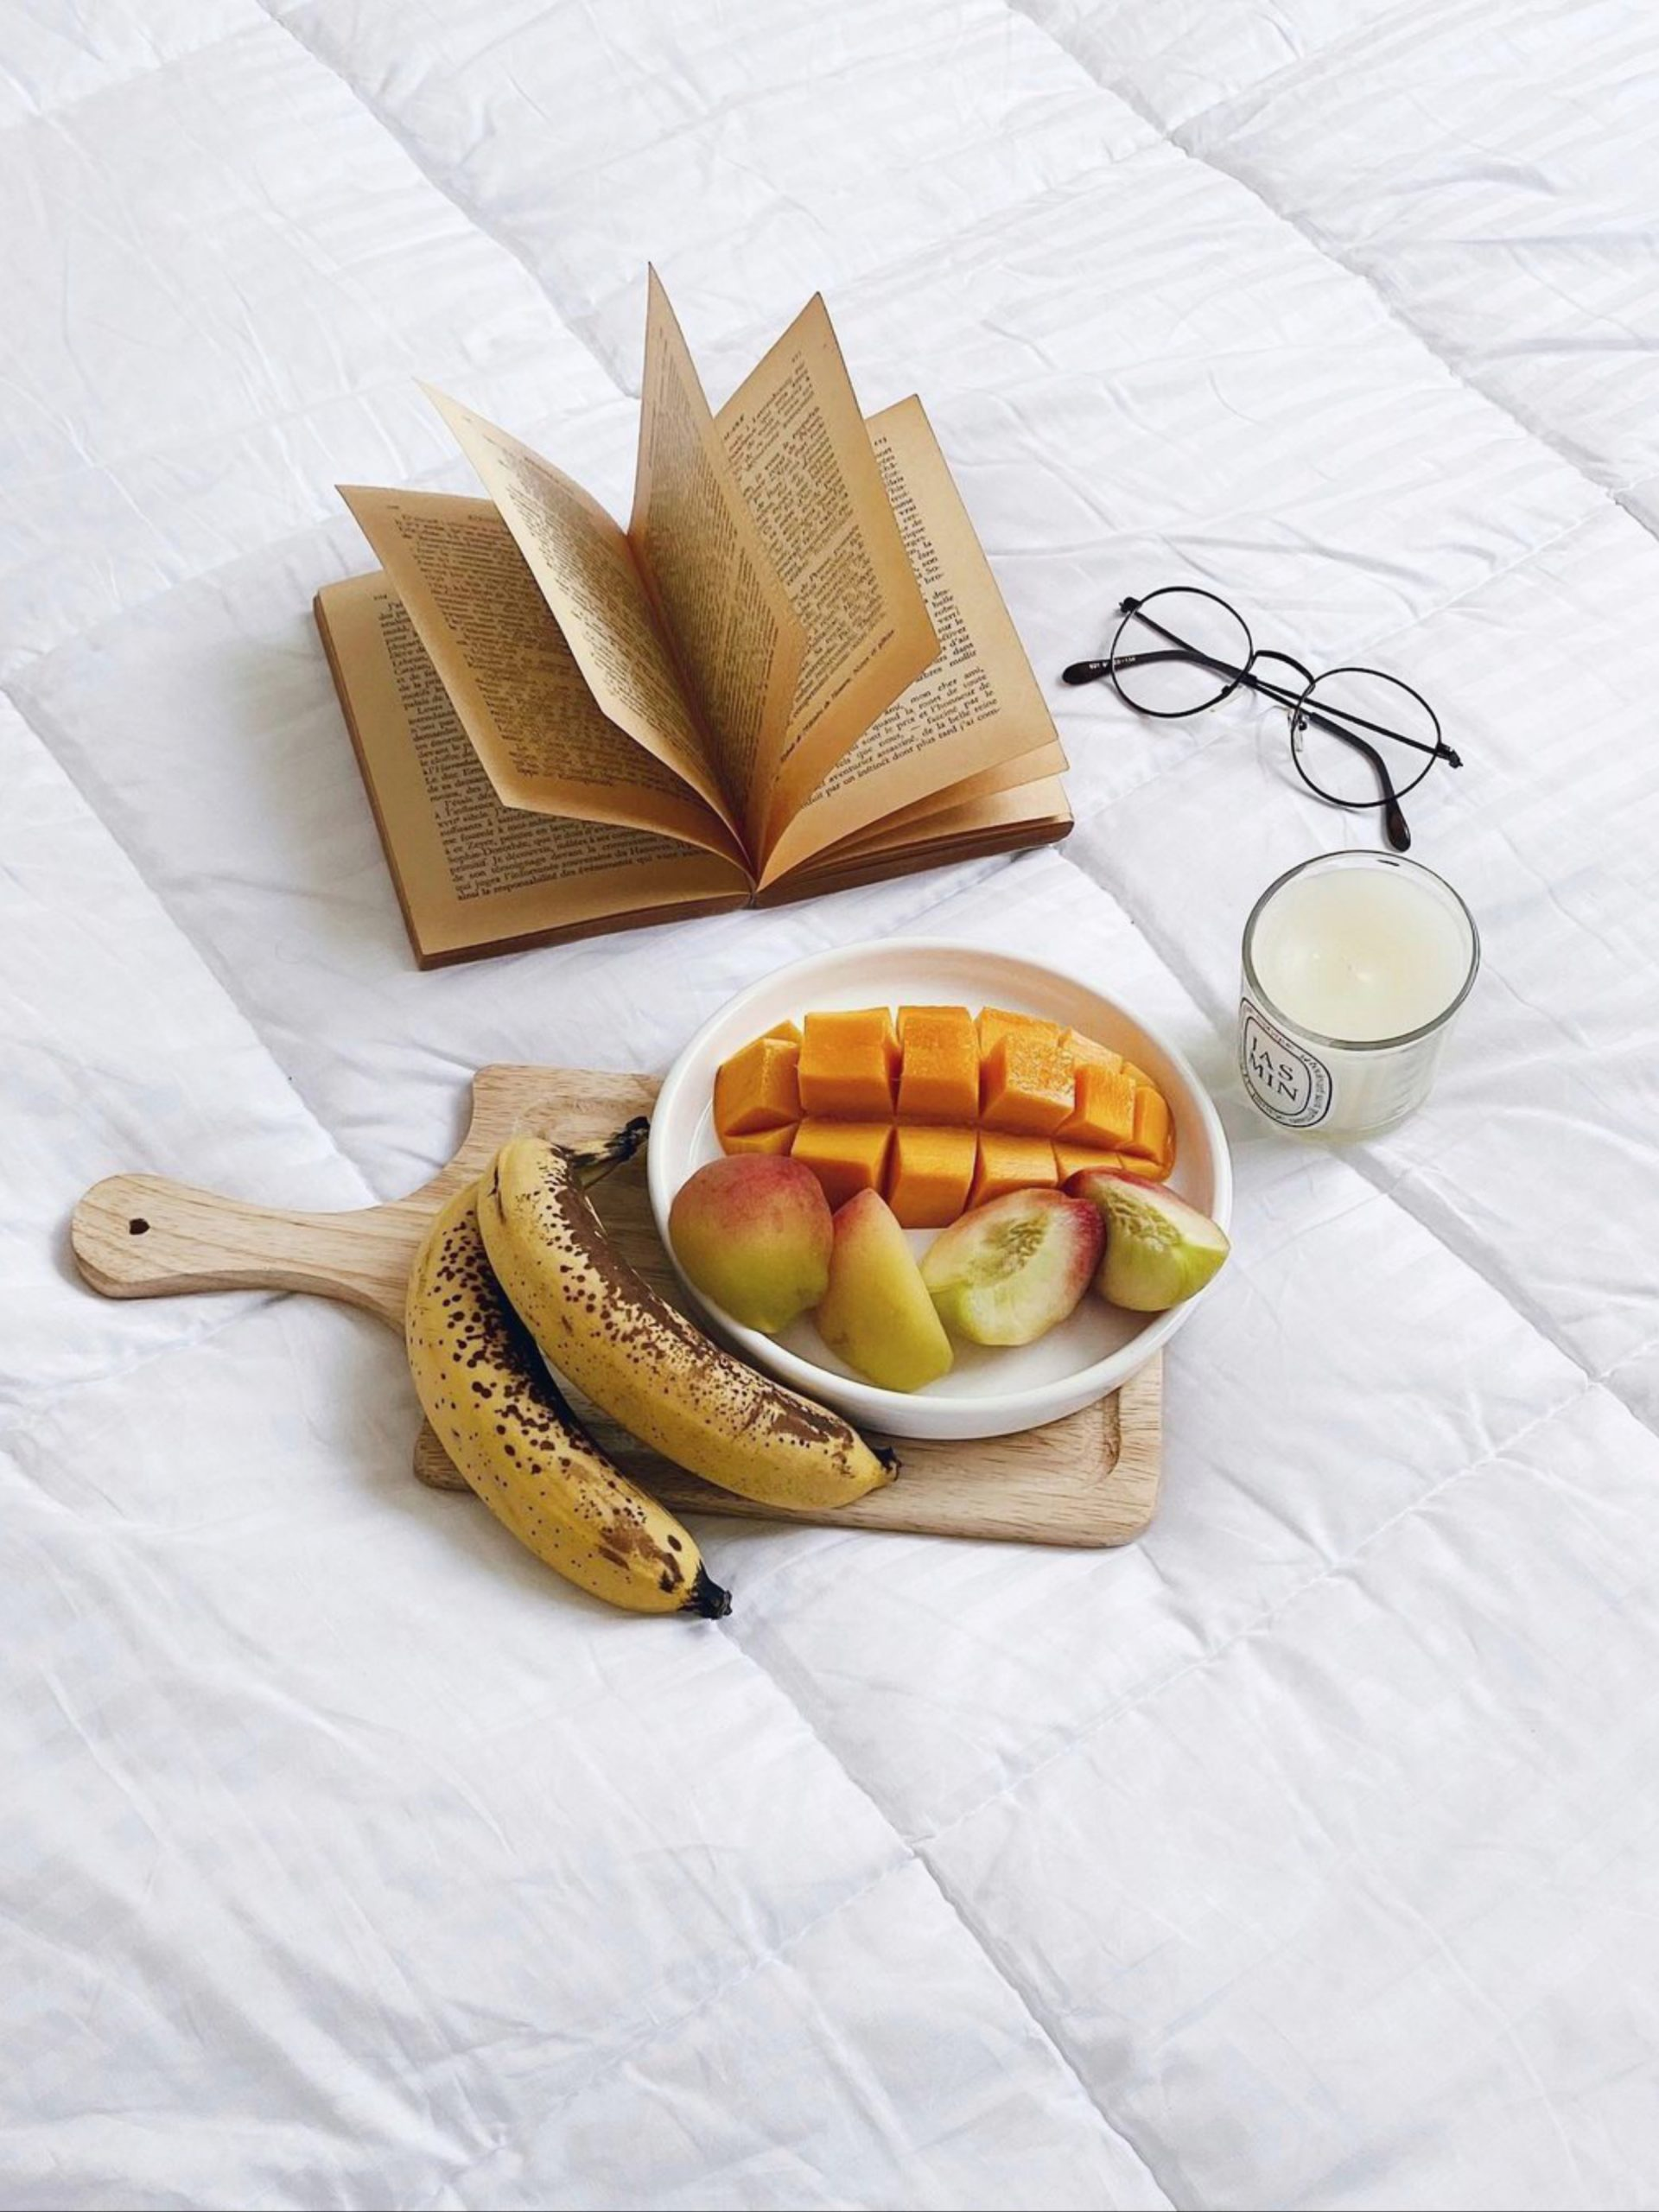 Fruits and a book